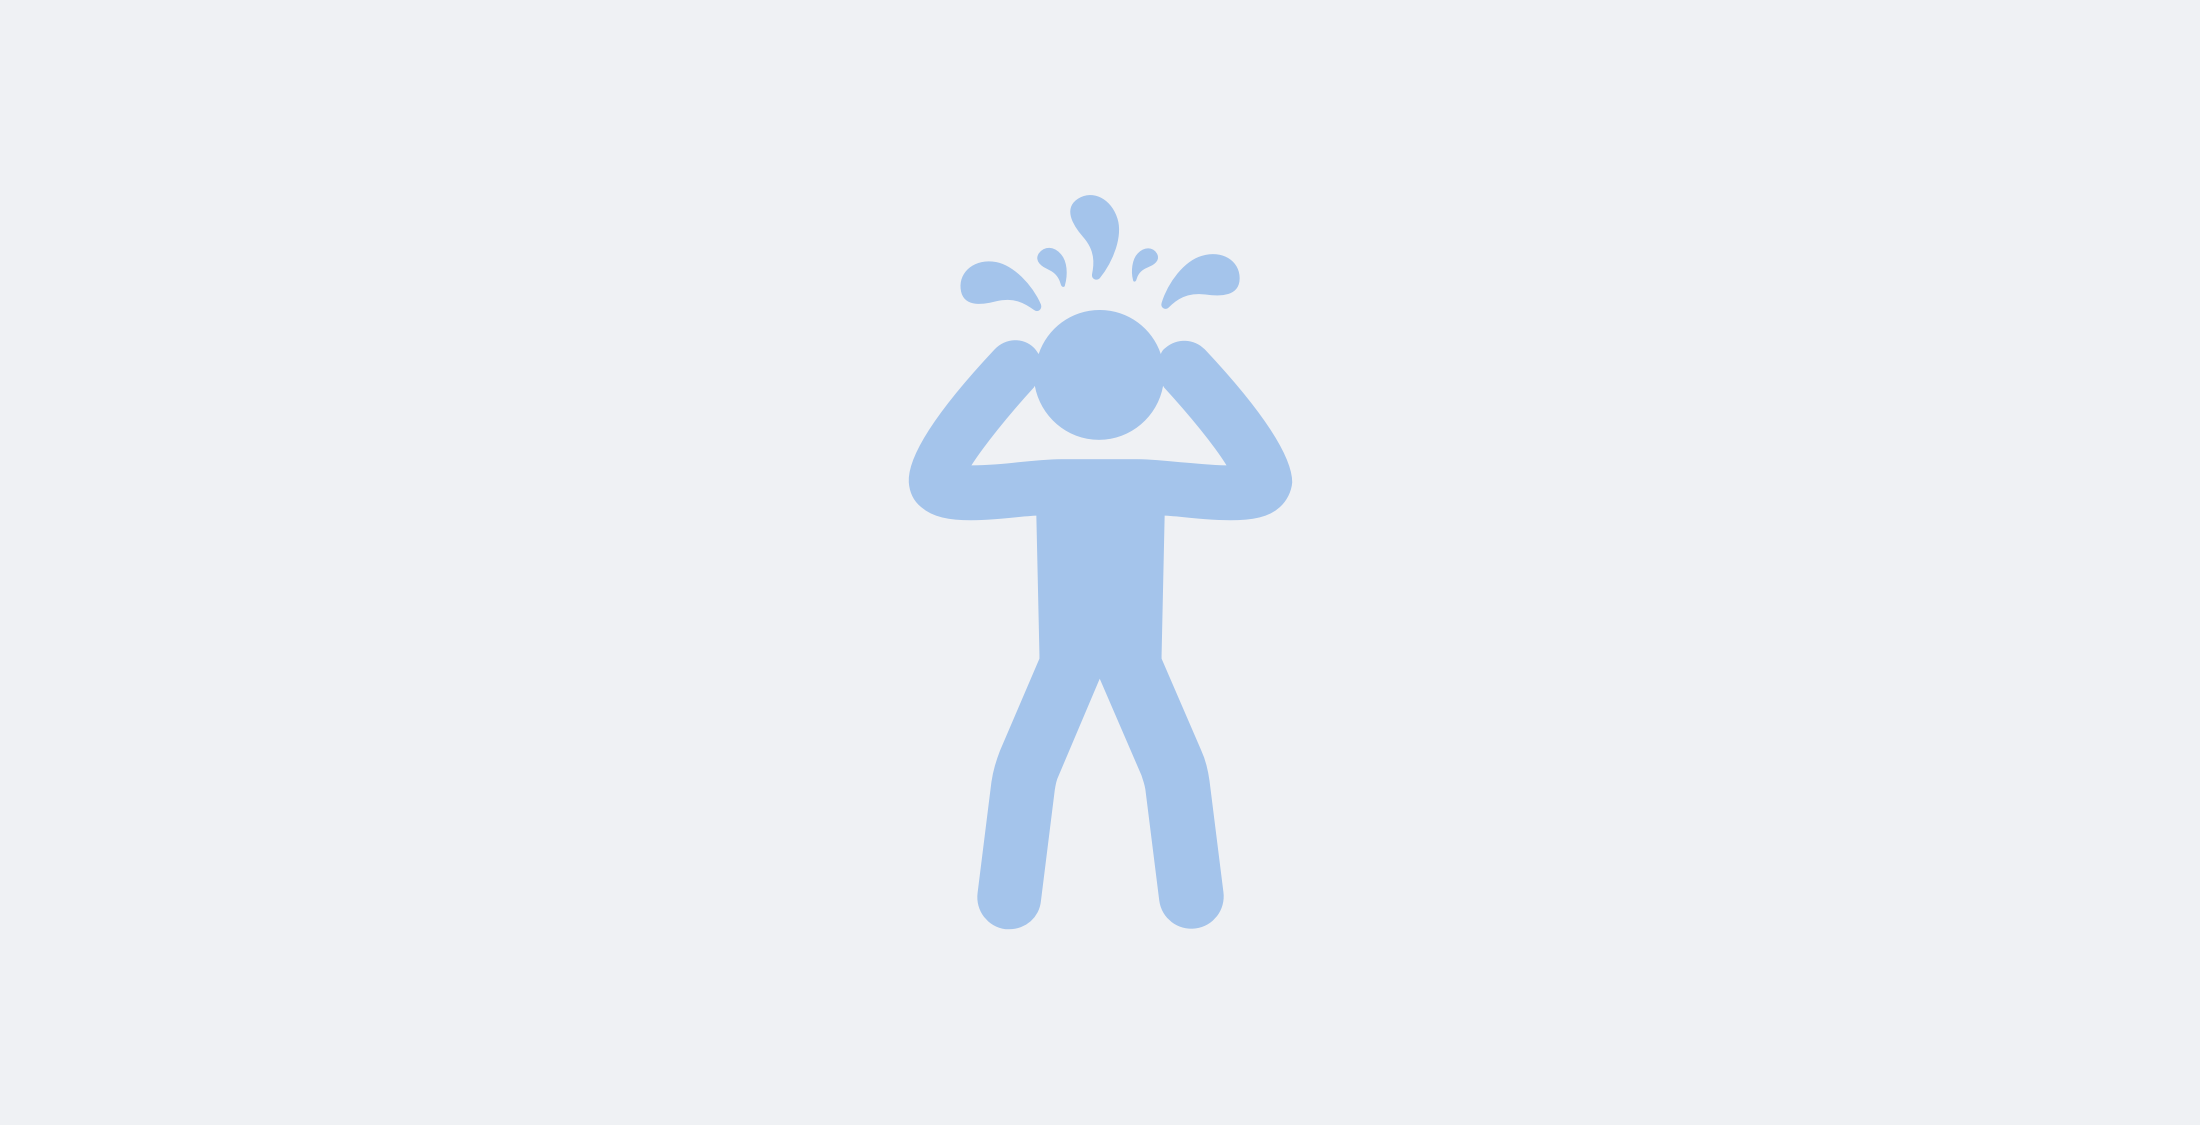 On health and laravel. Stress clipart mental stress